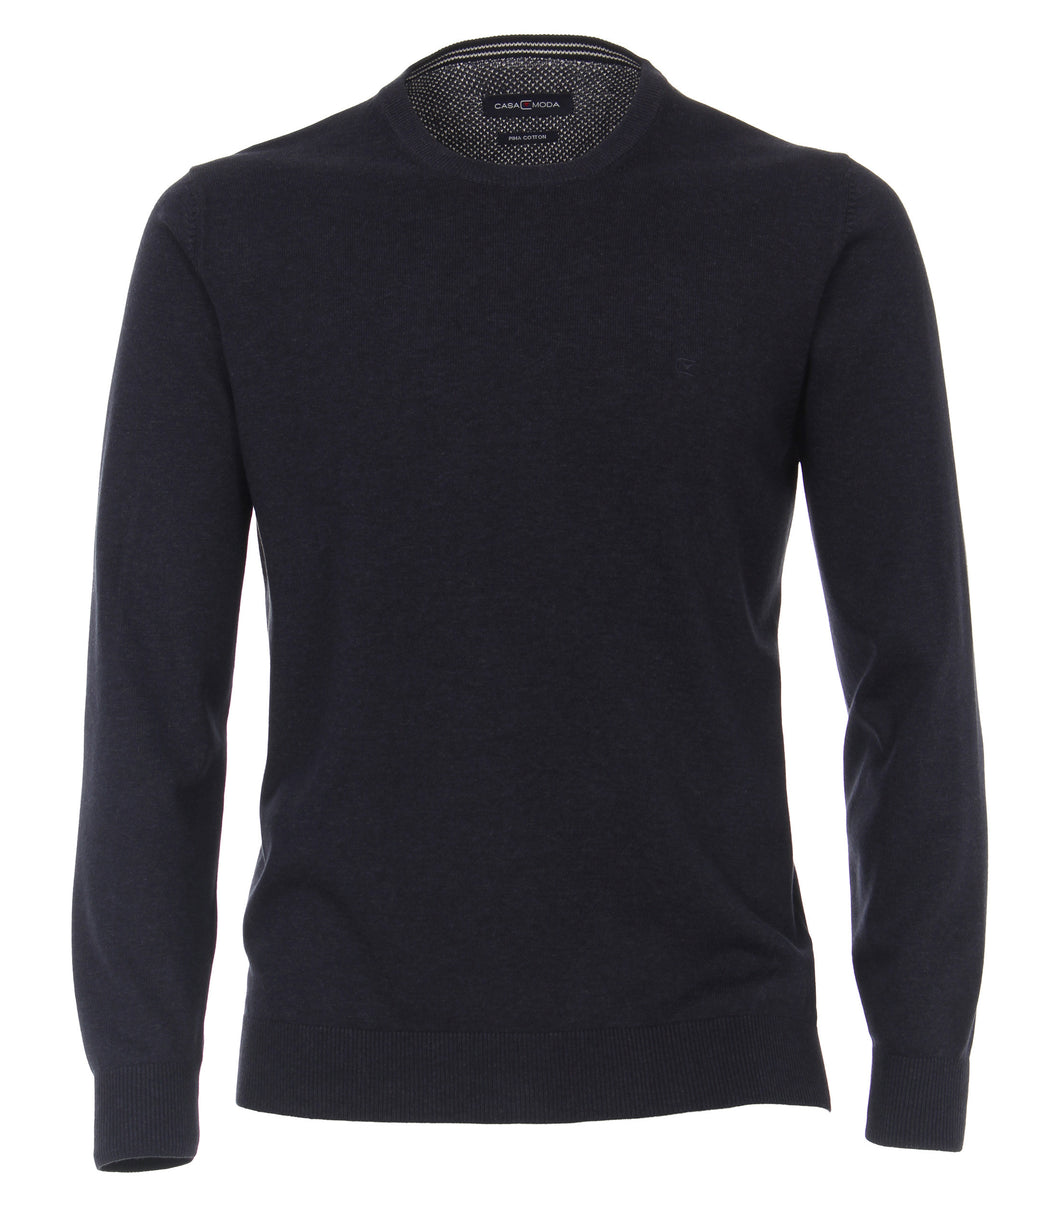 Casa Moda Navy Blue Sweater Crew Neck